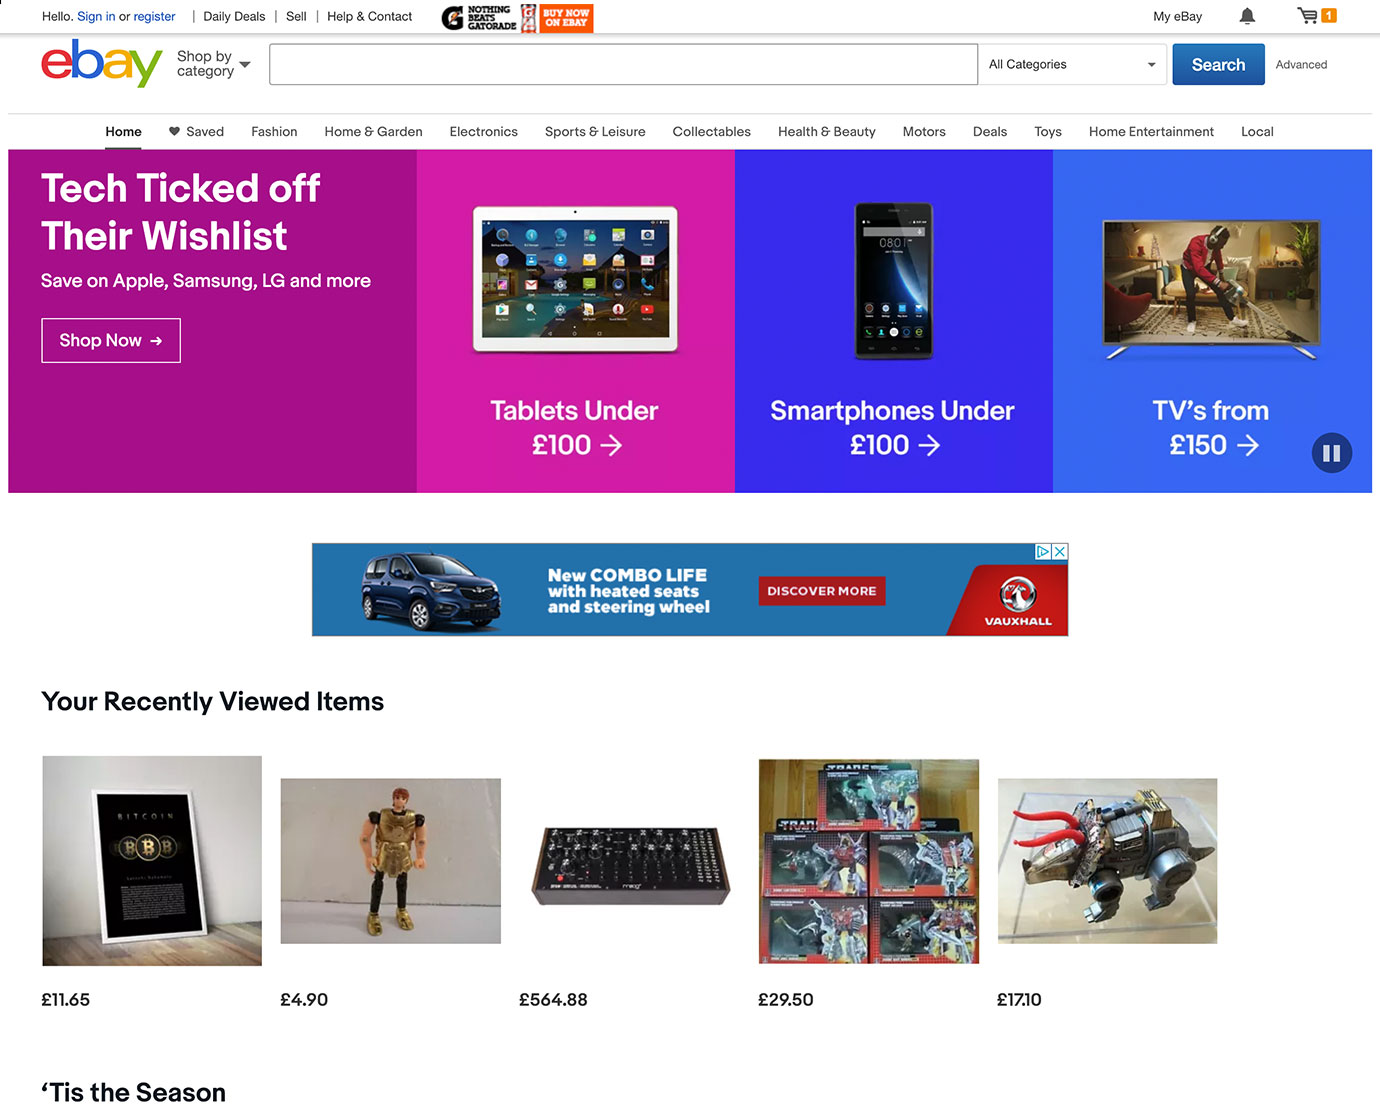 ebay coupons new promo codes page 3 rh newpromo codes